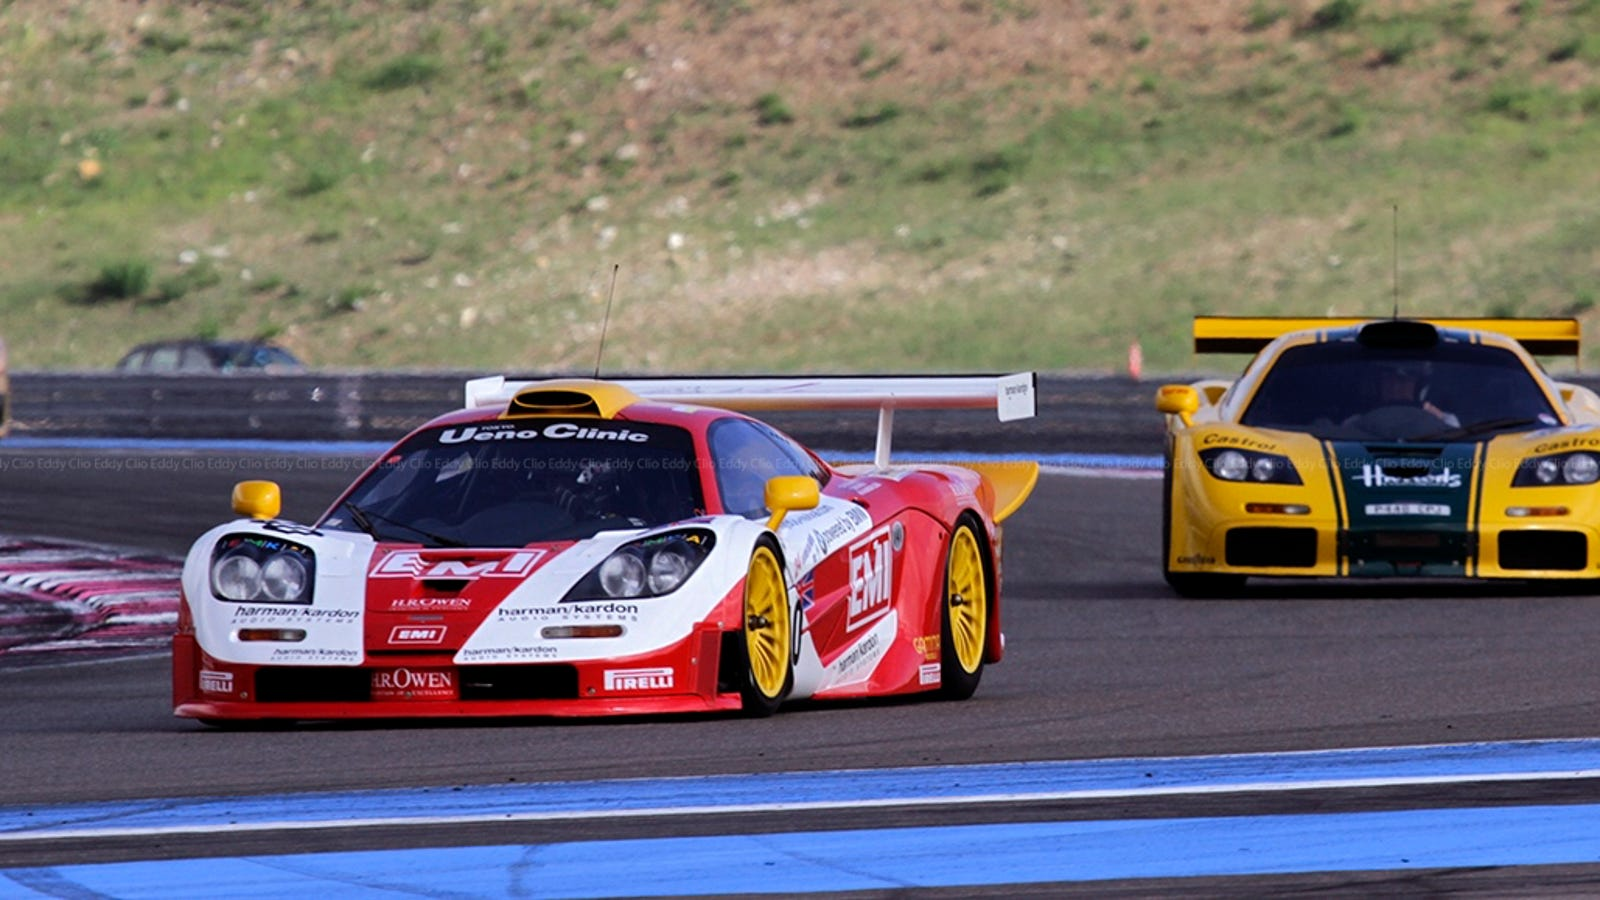 The Most Beautiful Race Cars Of The Past 20 Years